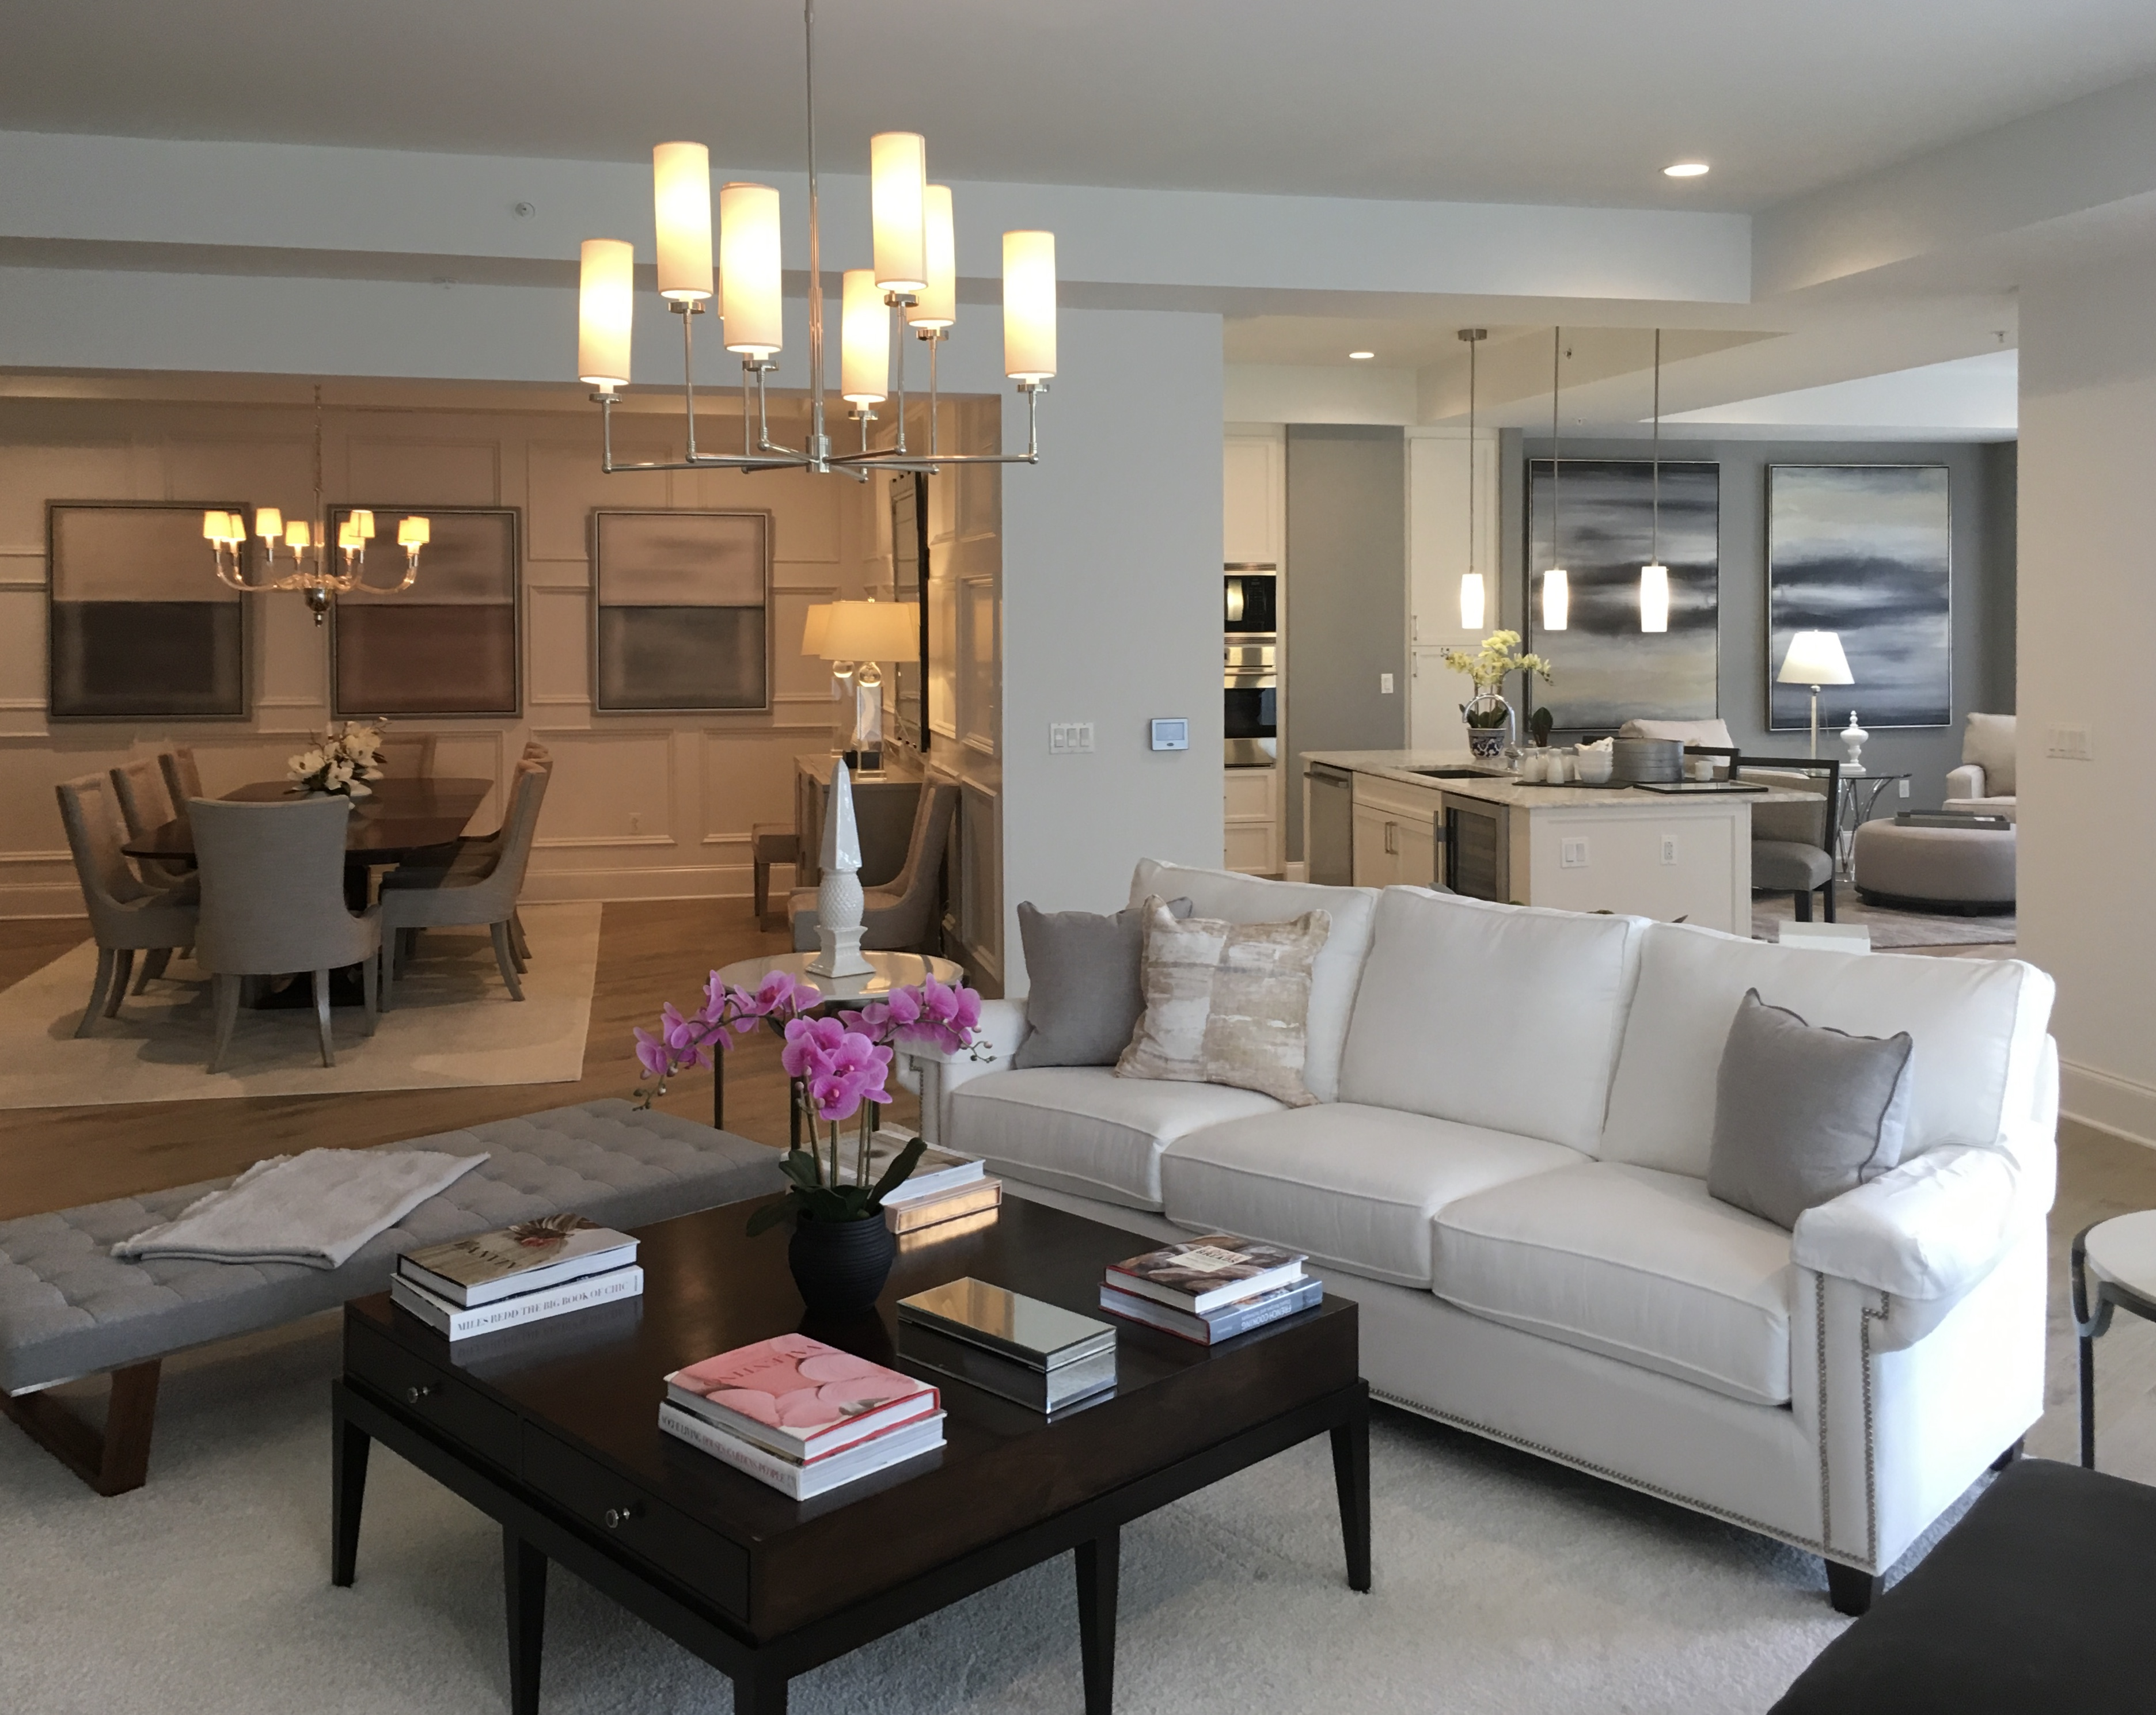 Open Concept Homes For Sale in Washington, DC